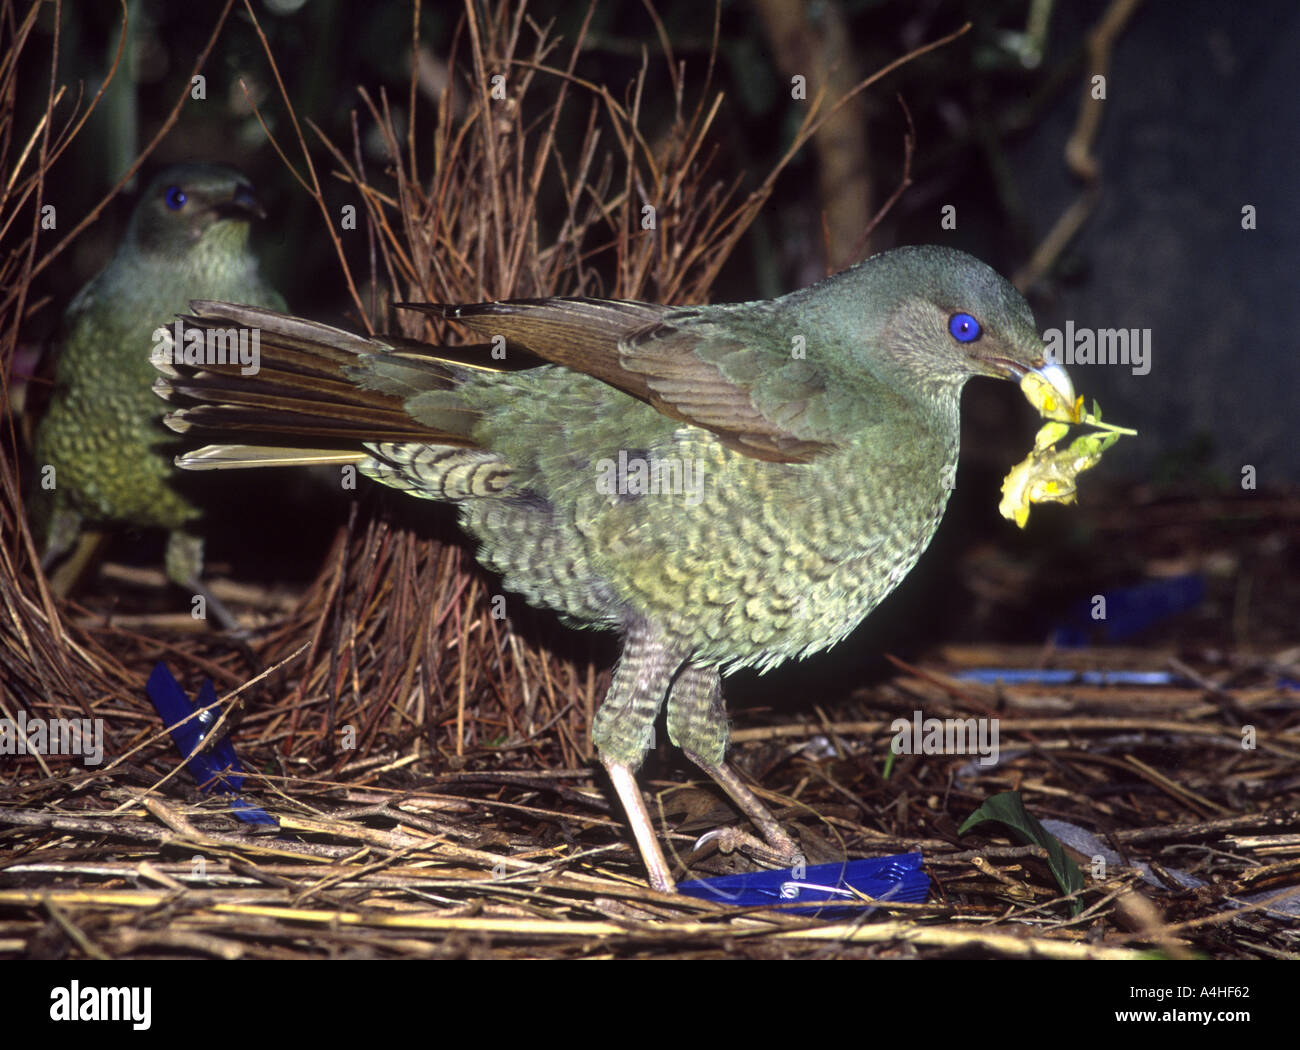 male-satin-bowerbird-ptilonorhynchus-violaceus-this-young-male-has-A4HF62.jpg